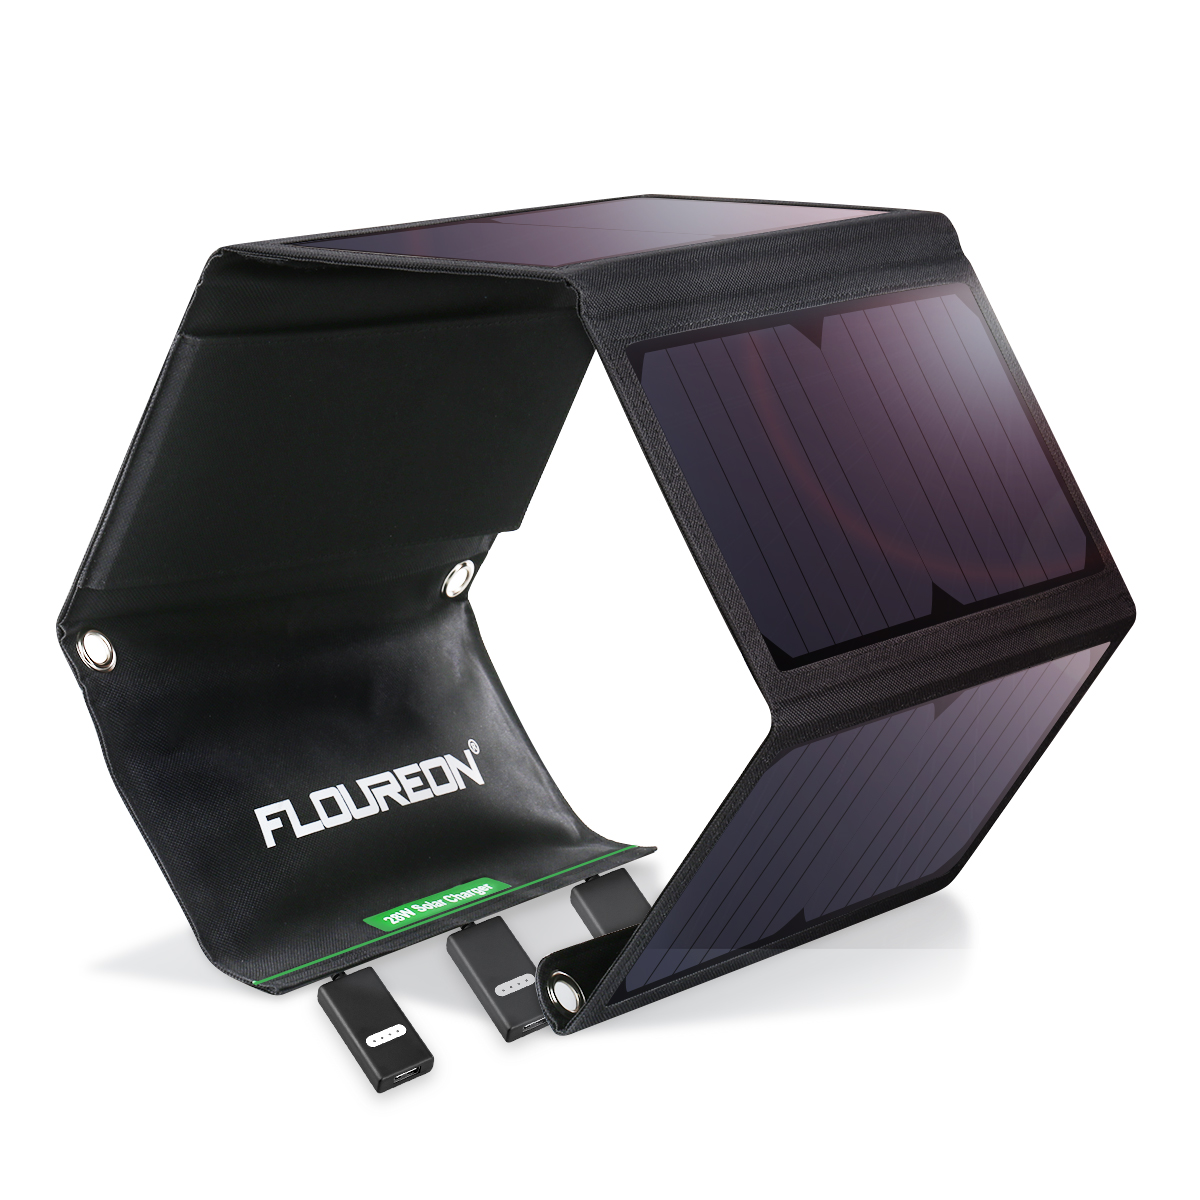 FLOUREON 28W Foldable Waterproof Solar Panel Charger Mobile Power Bank For Smartphones Tablets Triple USB Ports Outdoor